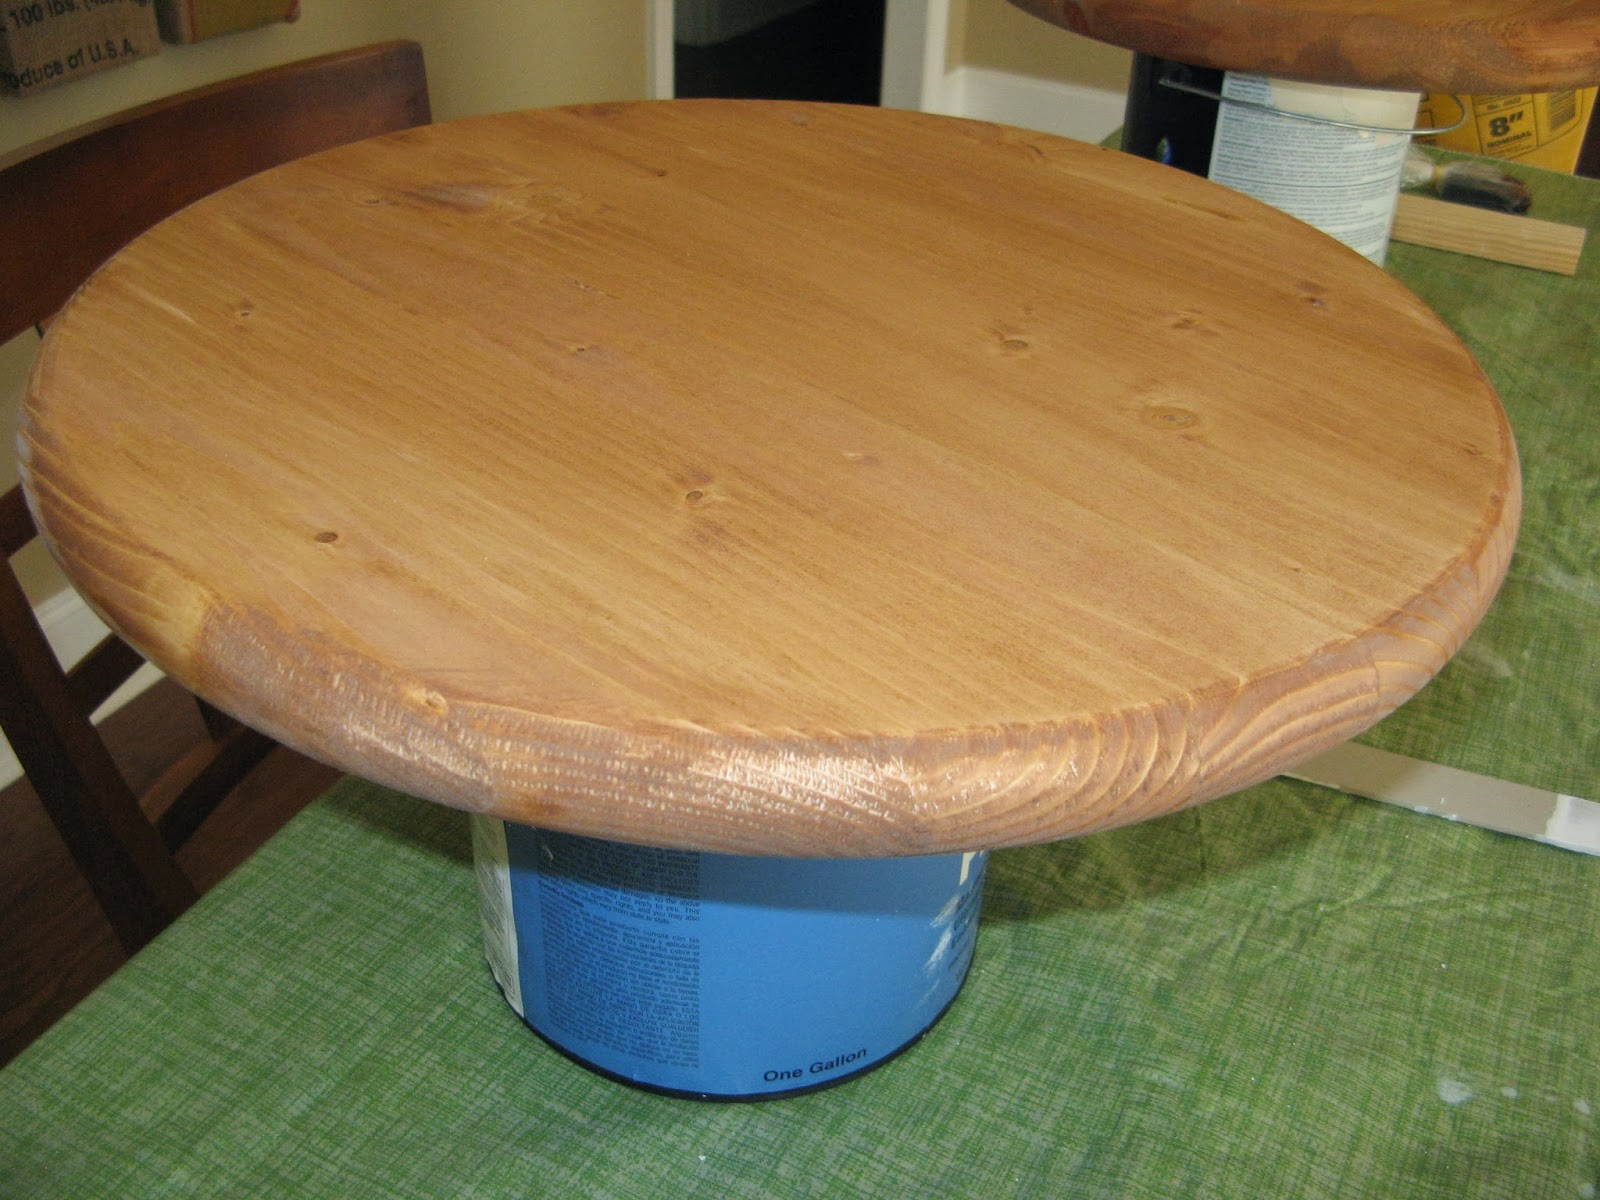 DIY Spool Table - wooden table top and base